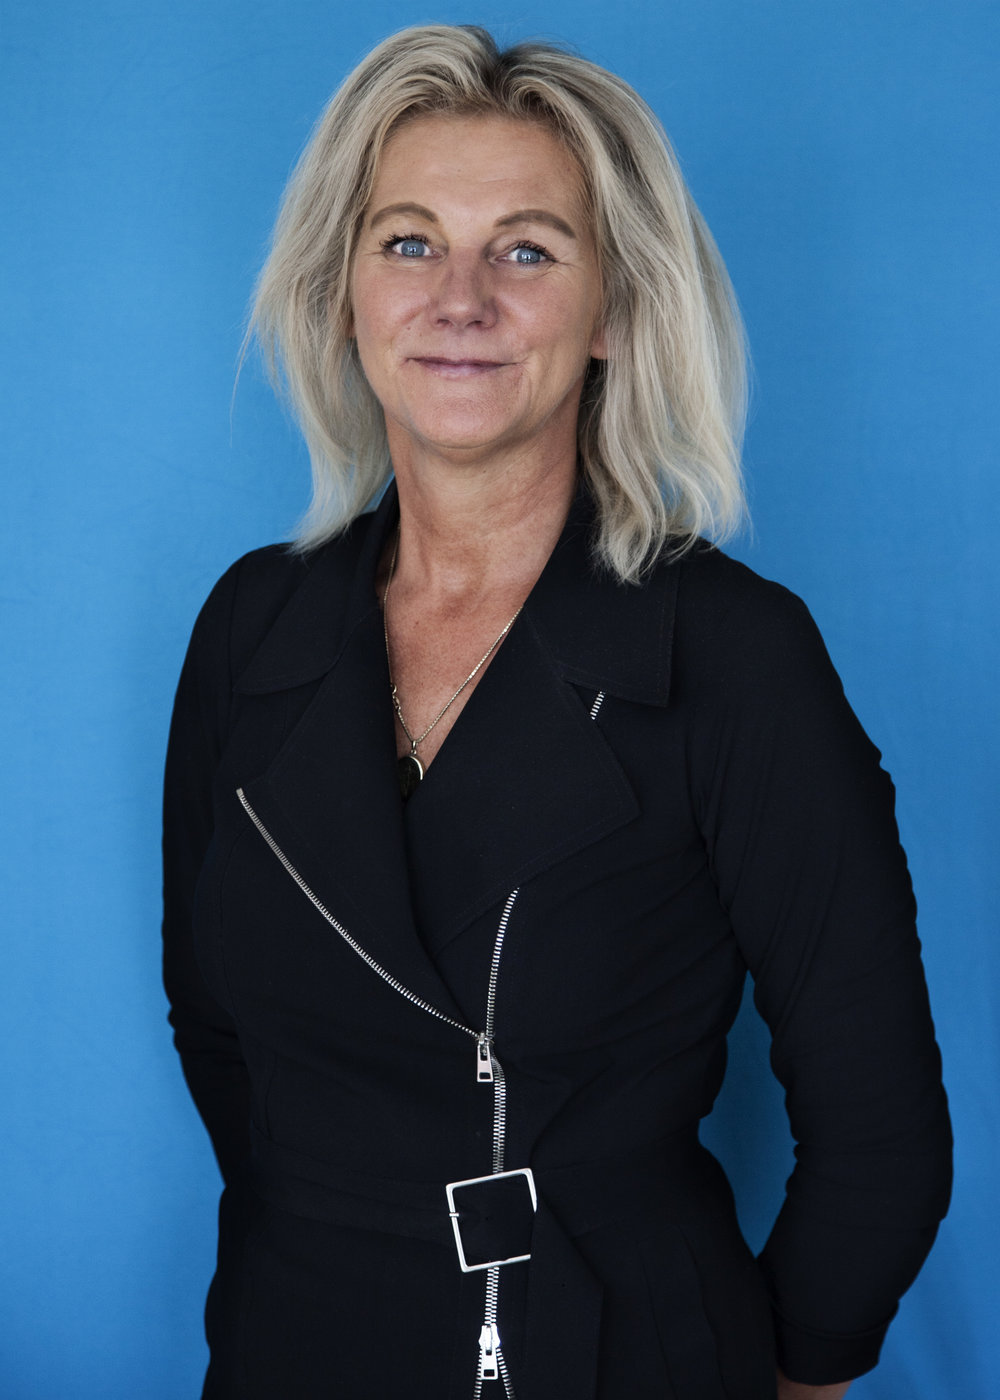 the Executive Director of Coordination Centre Human Trafficking Netherlands (CoMensha)